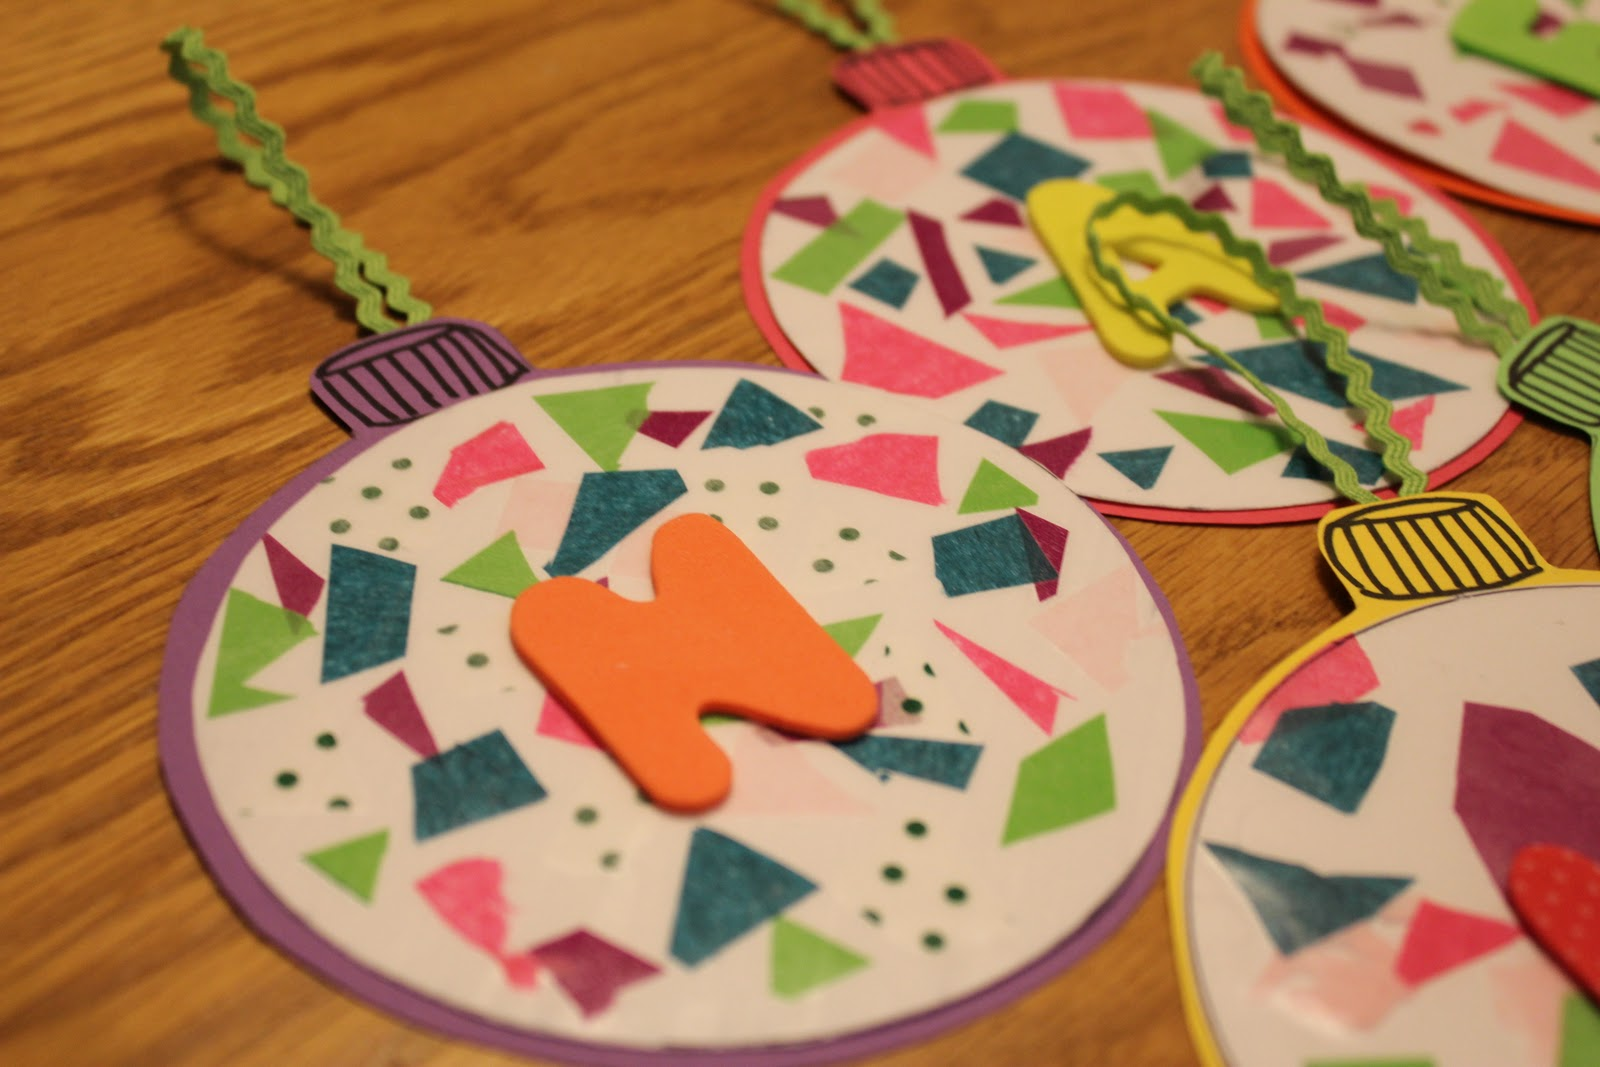 Ornaments with names on them - Have Your Child Spell His Name And Hang The Ornaments Somewhere Where He Can See Them Often